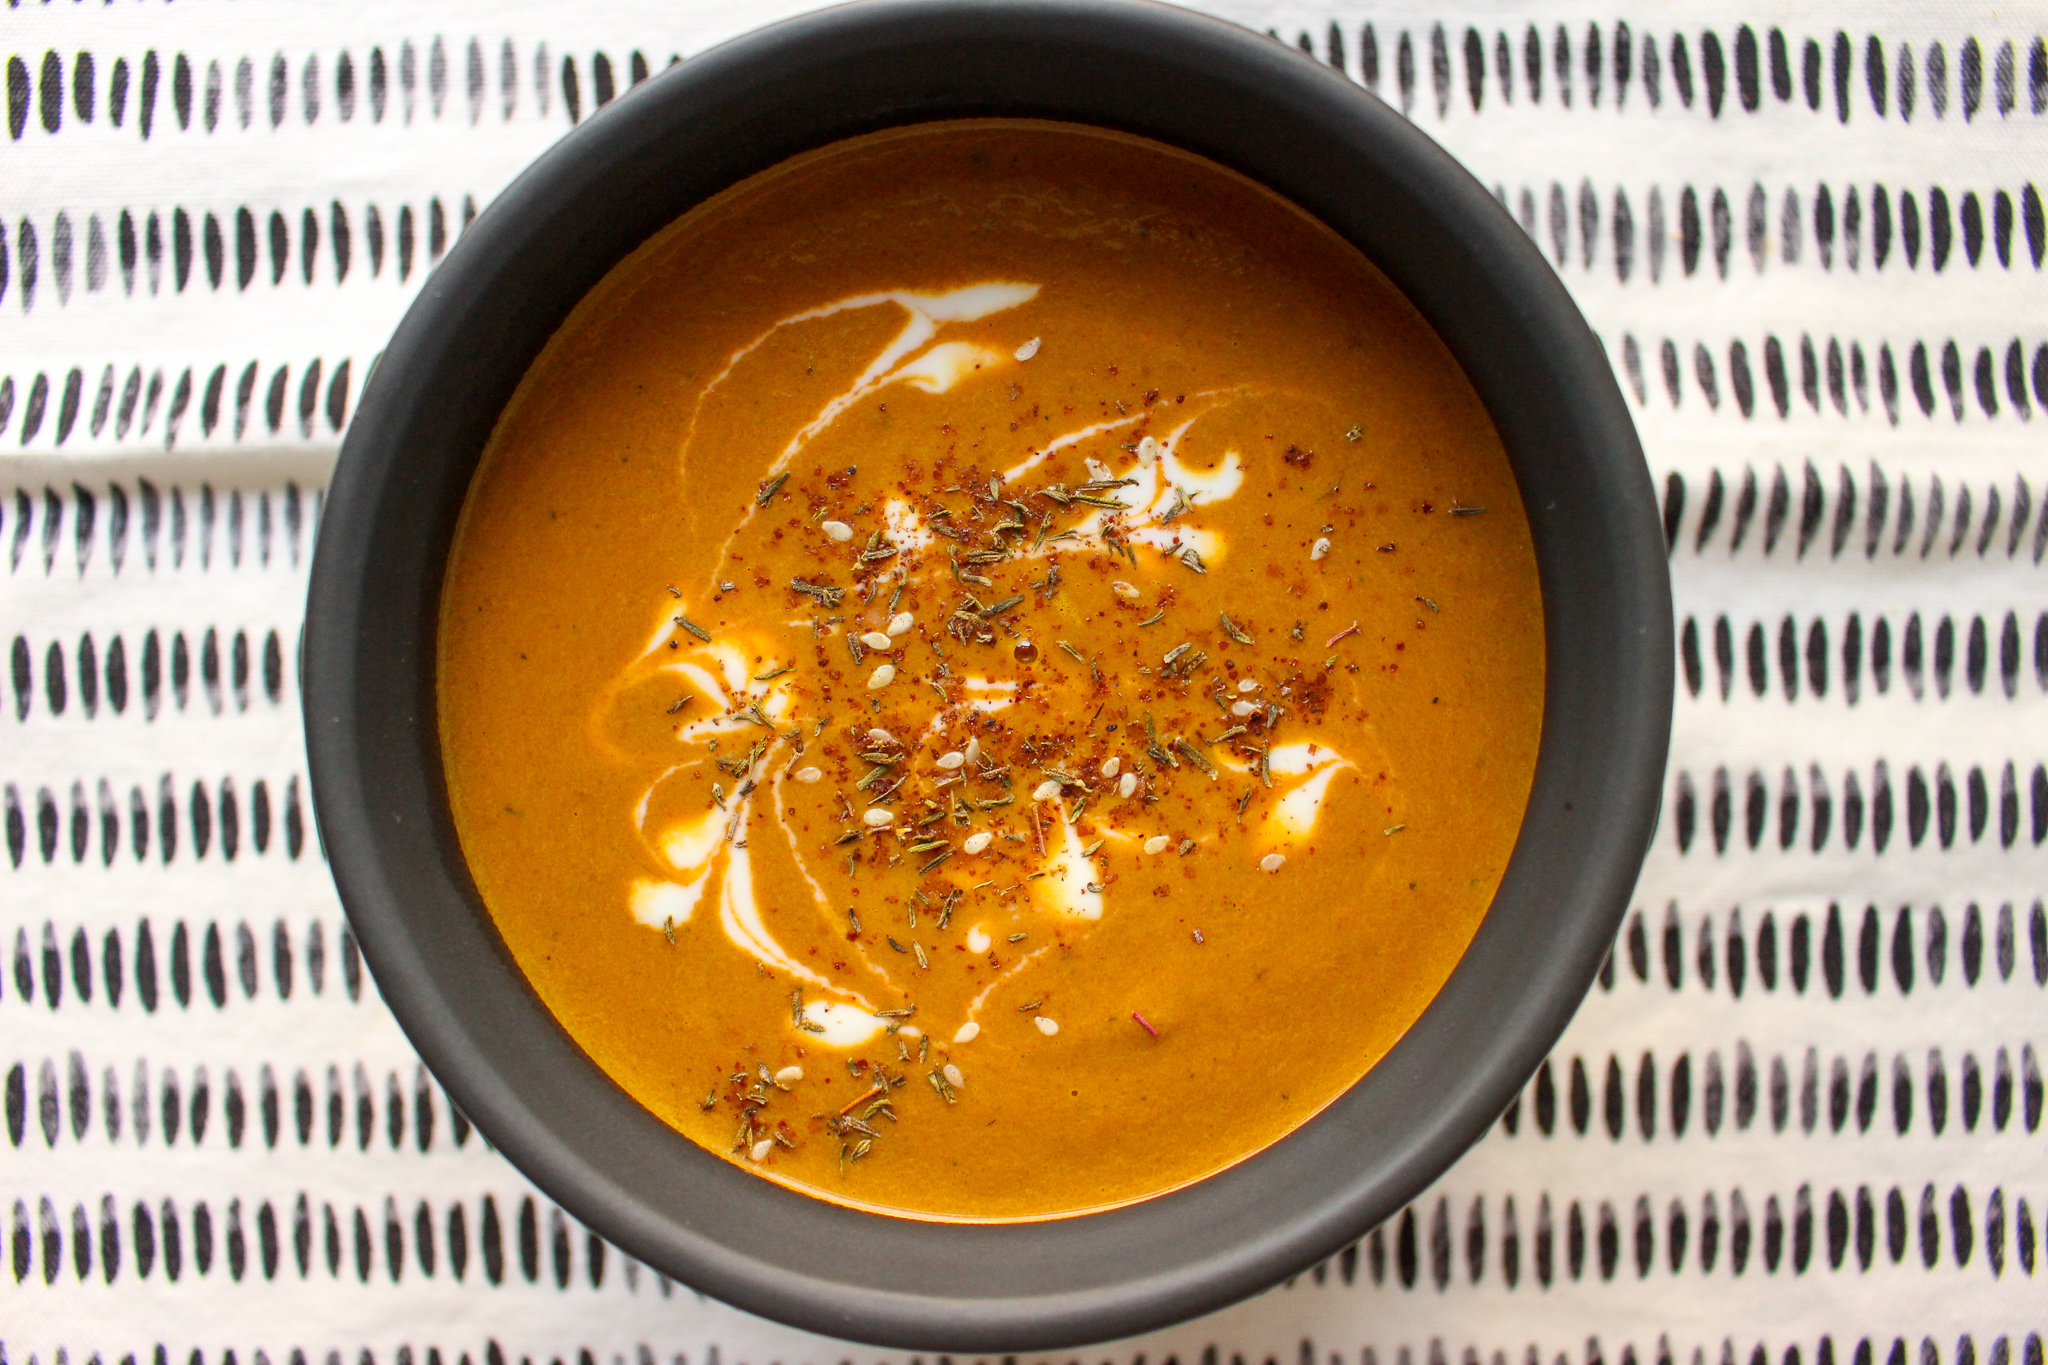 Purple carrot soup with za'atar | Me & The Moose. This carrot soup is a warm, hearty, and healthy lunch or light dinner. #meandthemoose #carrotsoup #purplecarrots #za'atar #glutenfree #vegan